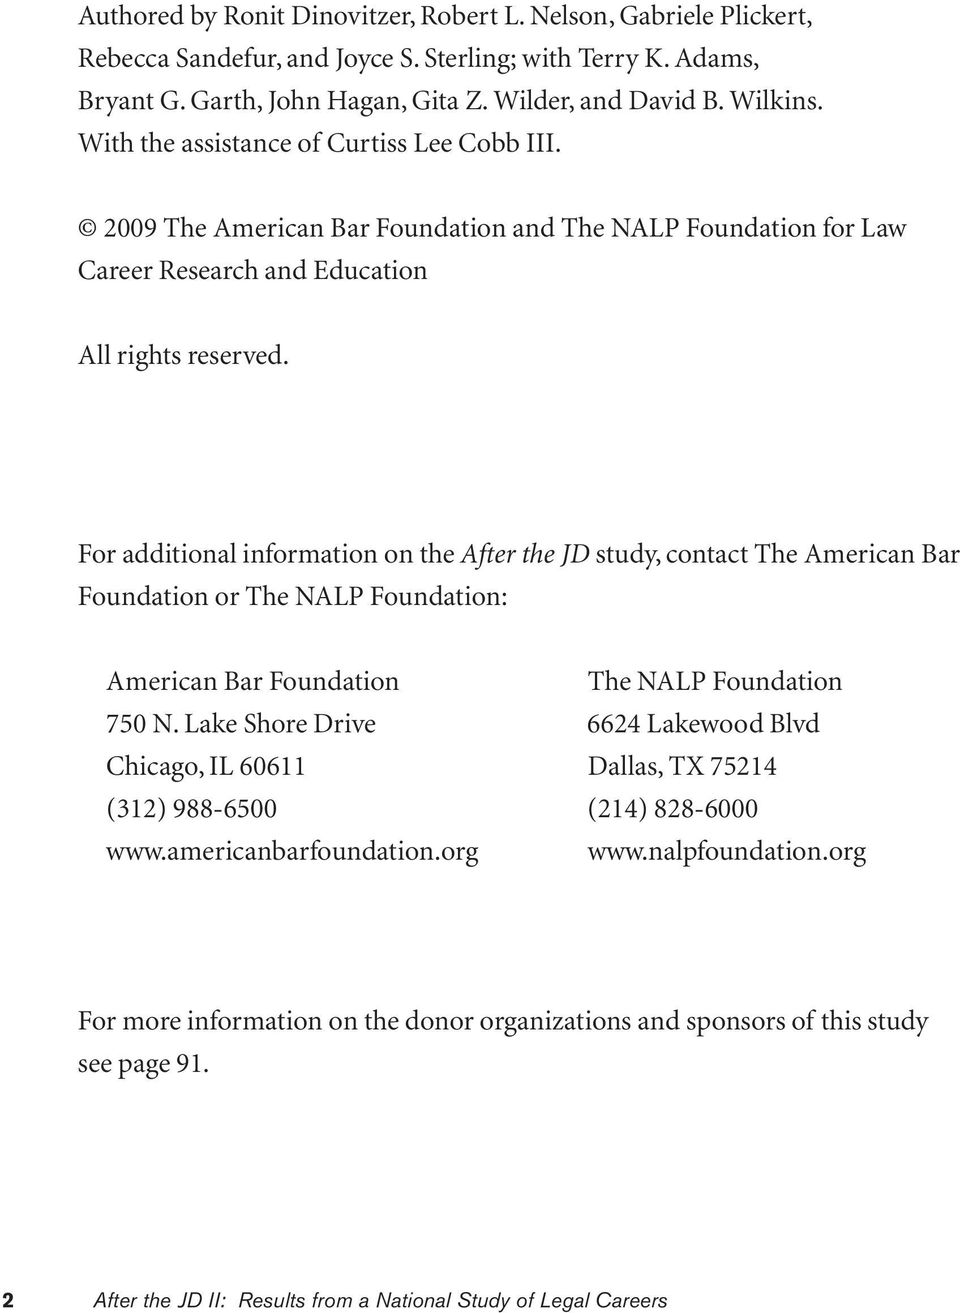 For additional information on the After the JD study, contact The American Bar Foundation or The NALP Foundation: American Bar Foundation The NALP Foundation 750 N.